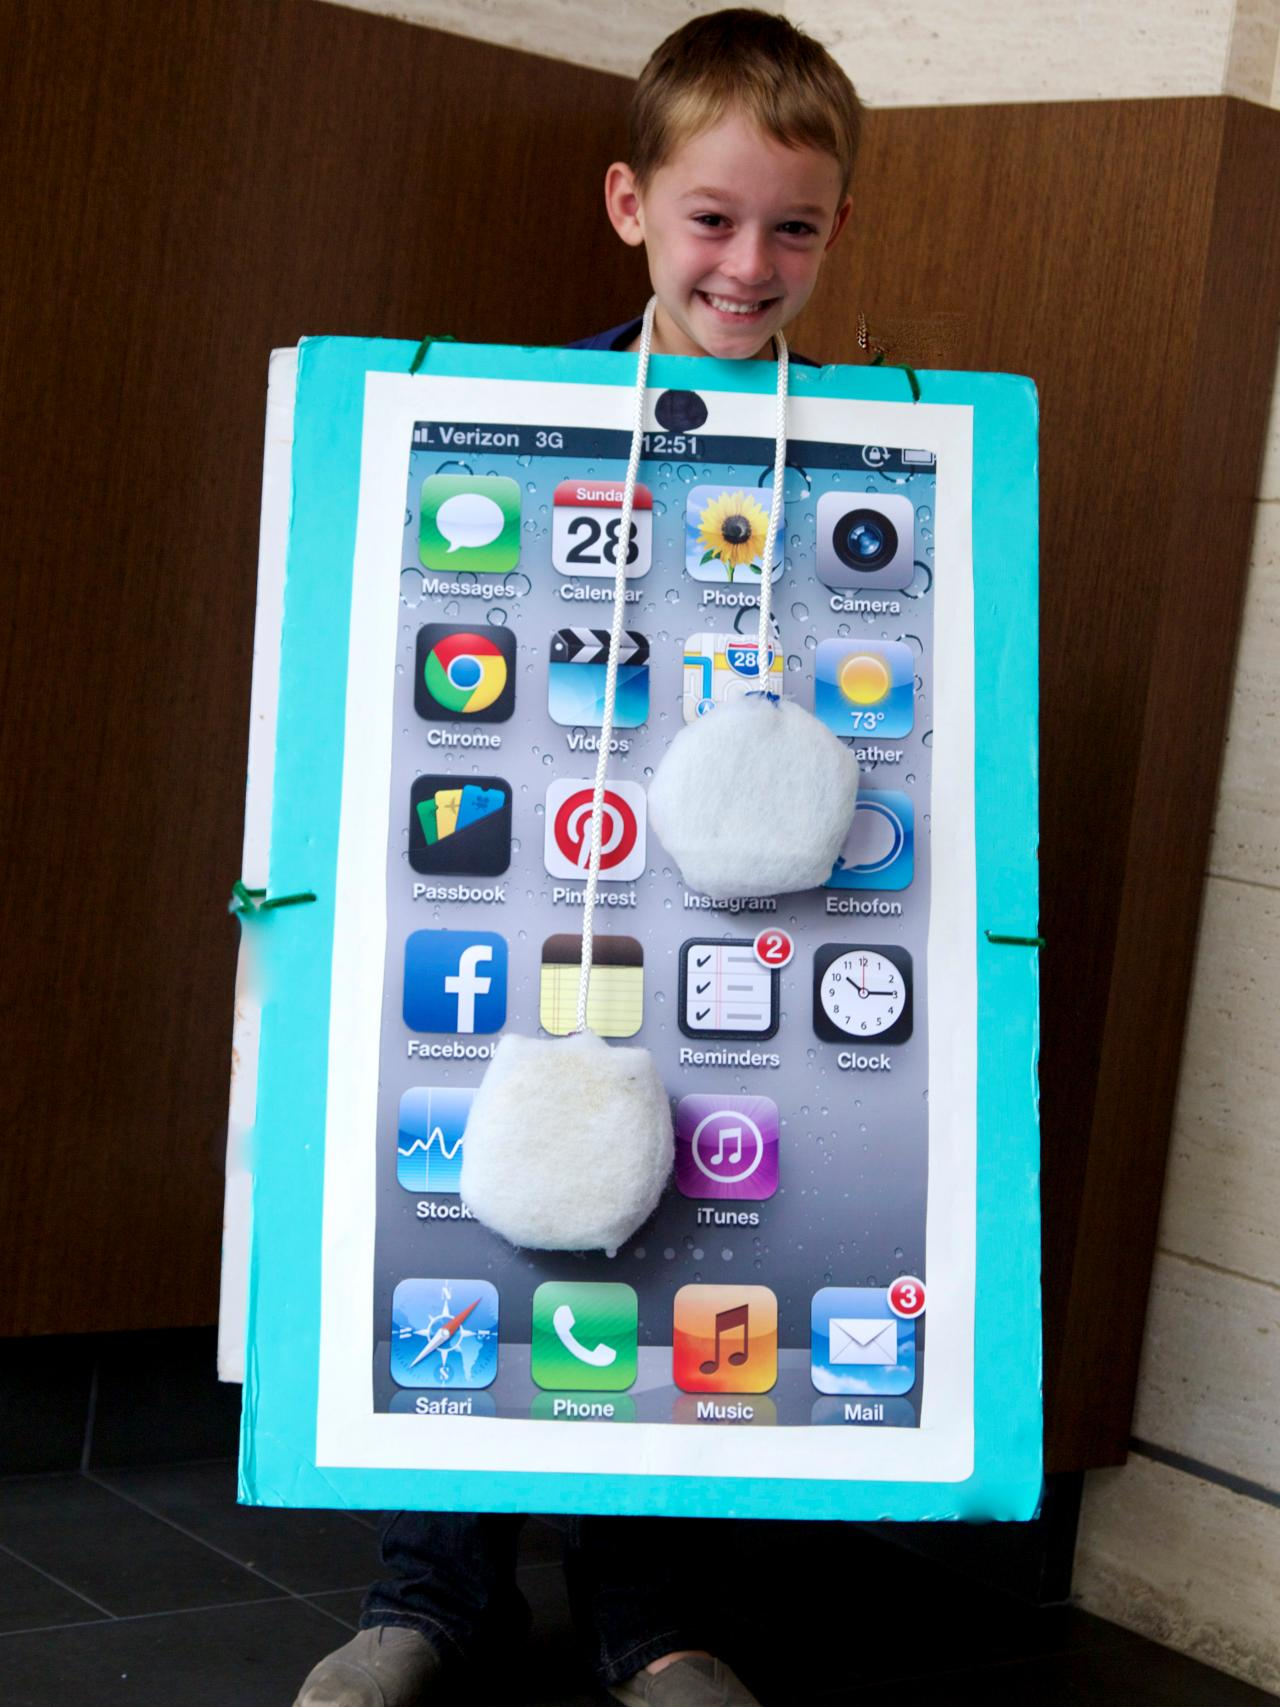 Desktop Toys For Grown Ups : How to make a diy smartphone halloween costume for kids